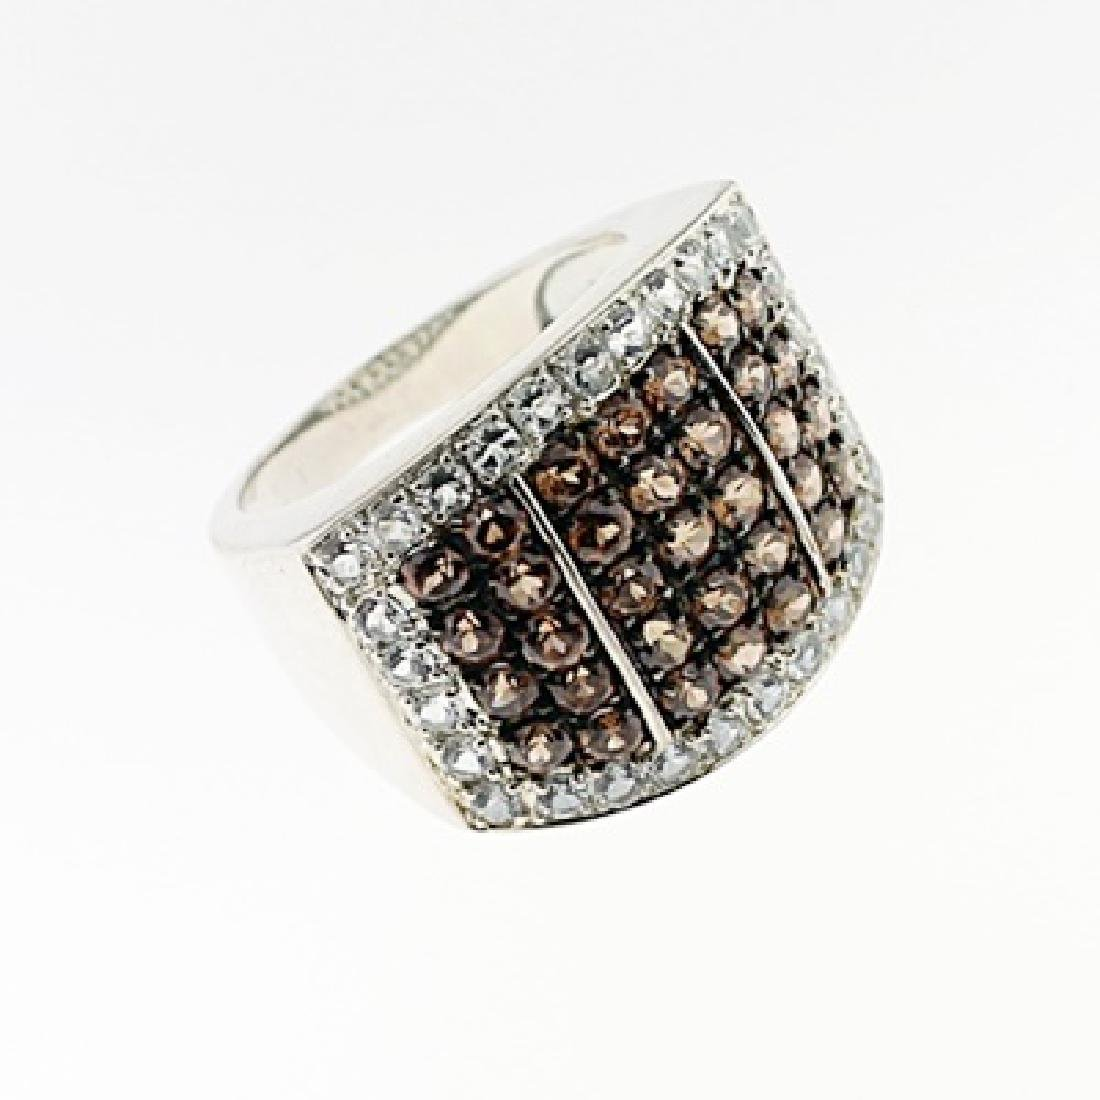 SILVER RING WITH CHOCOLATE ZIRCON AND WHITE ZIRCON